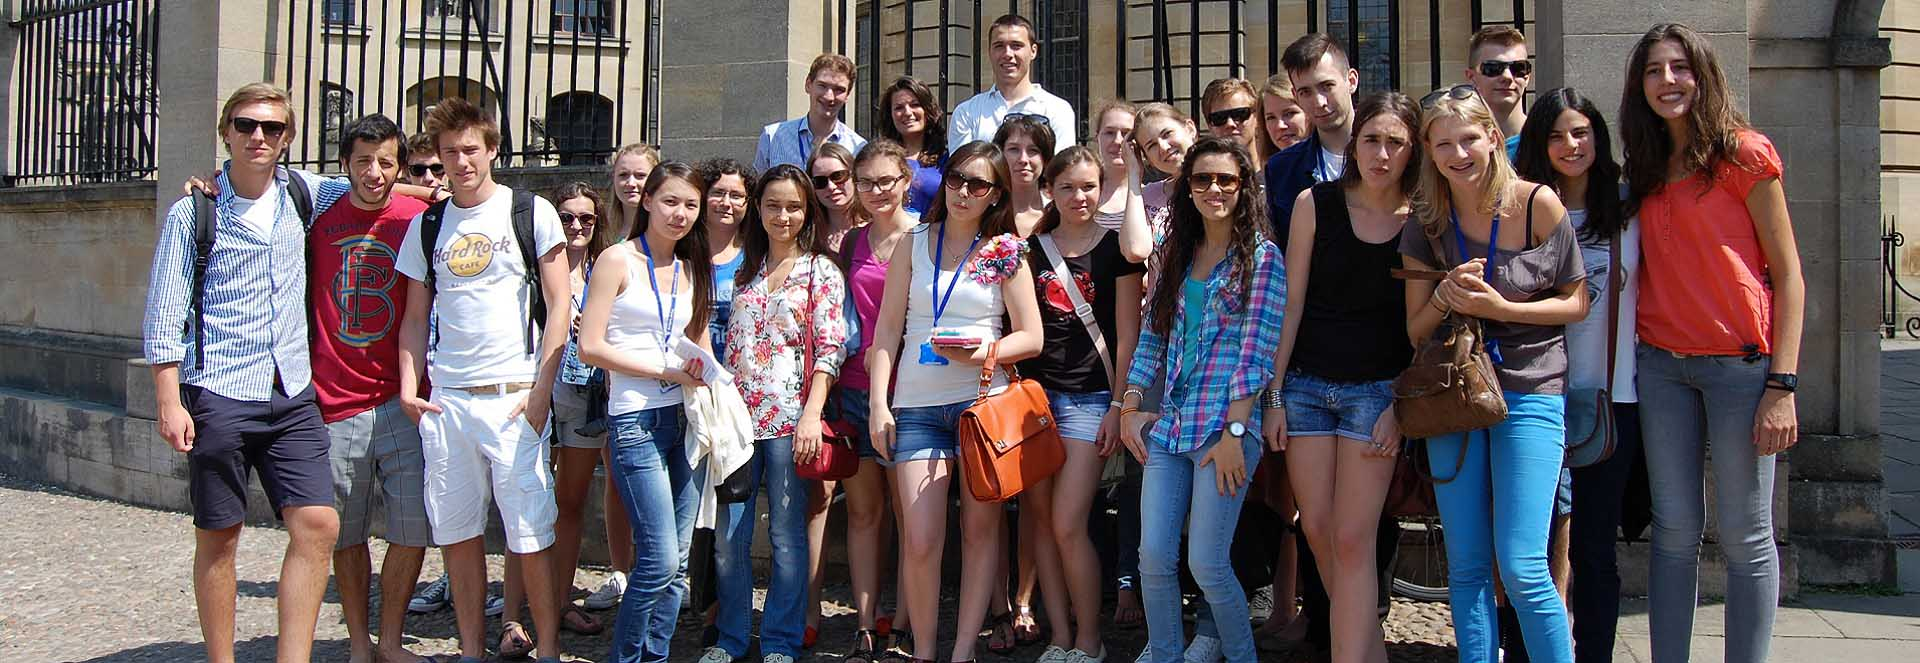 Students from St Clare's Oxford in front of the steps of the Sheldonian